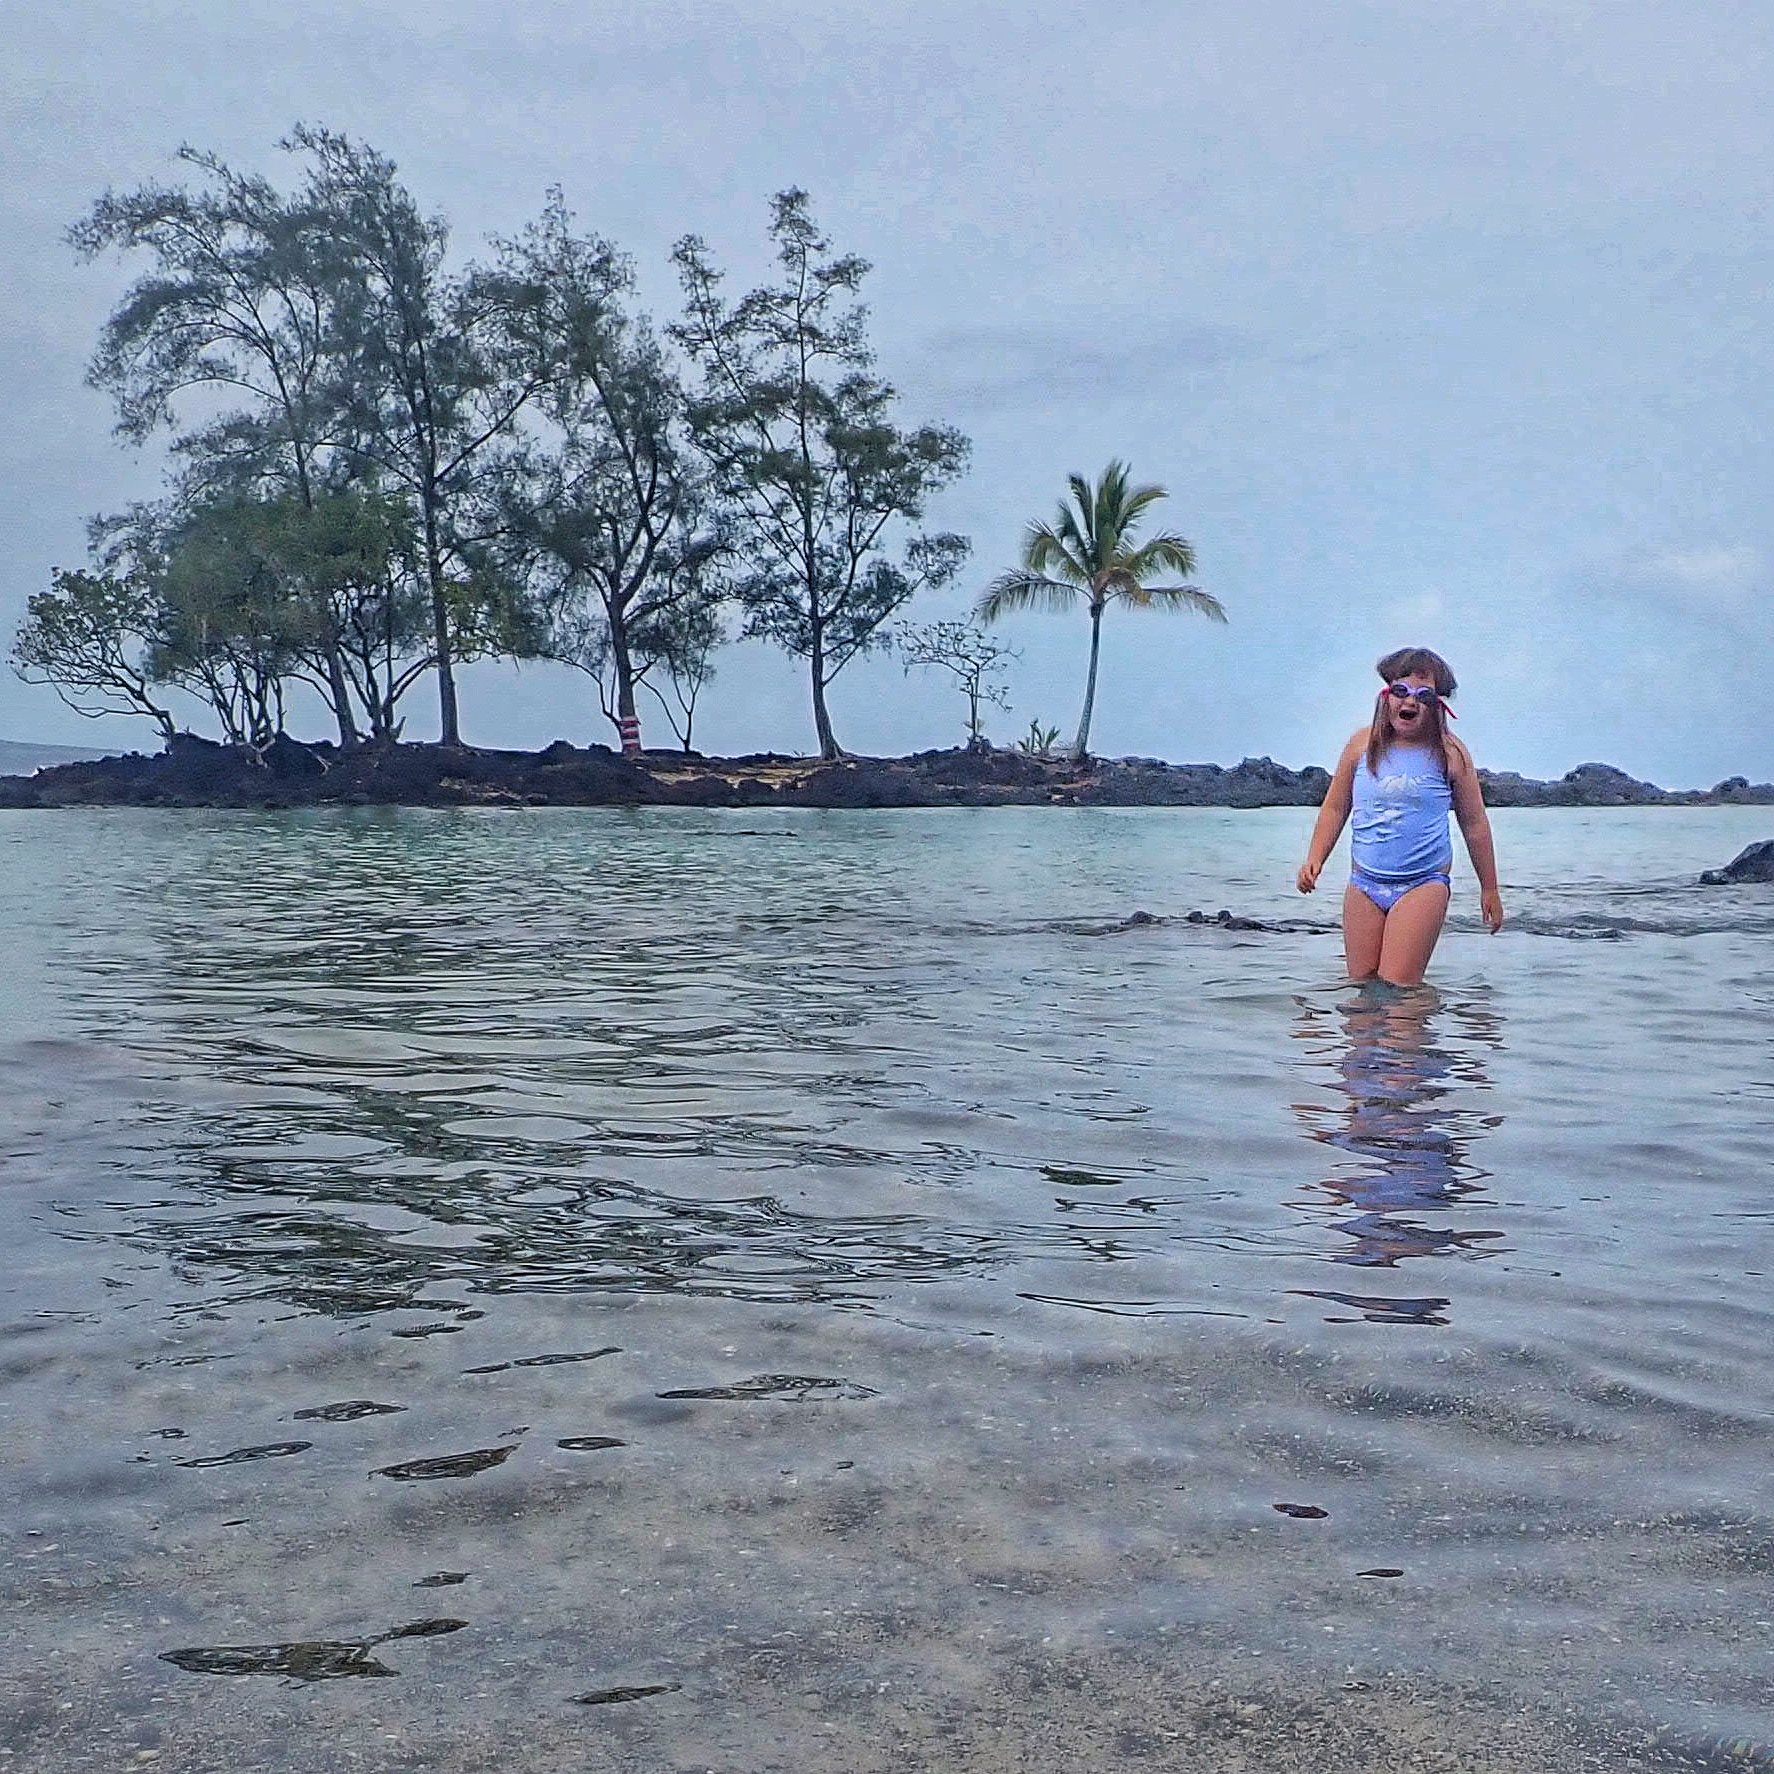 child in water with coconut trees